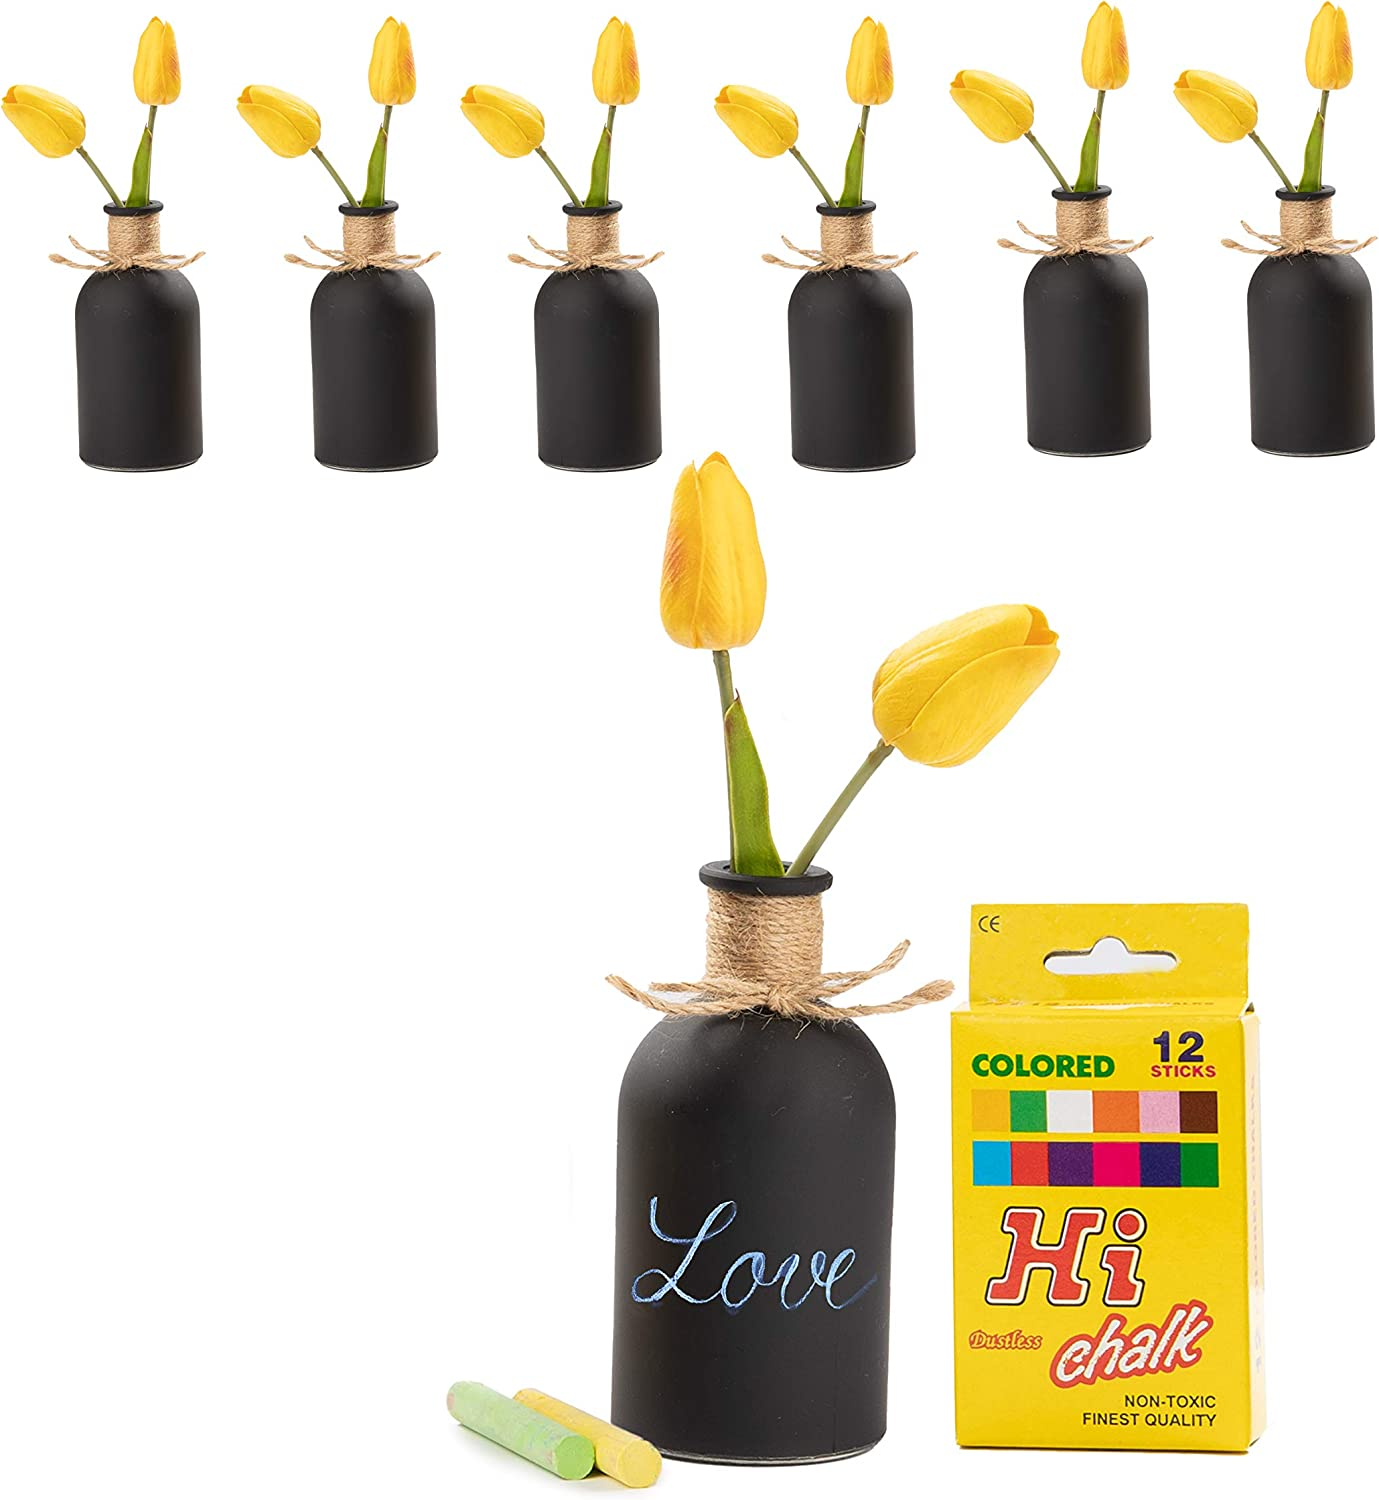 Upper Midland Products 6 Small Black Vases for Decor, Chalkboard Vase Flower Centerpieces and Chalk